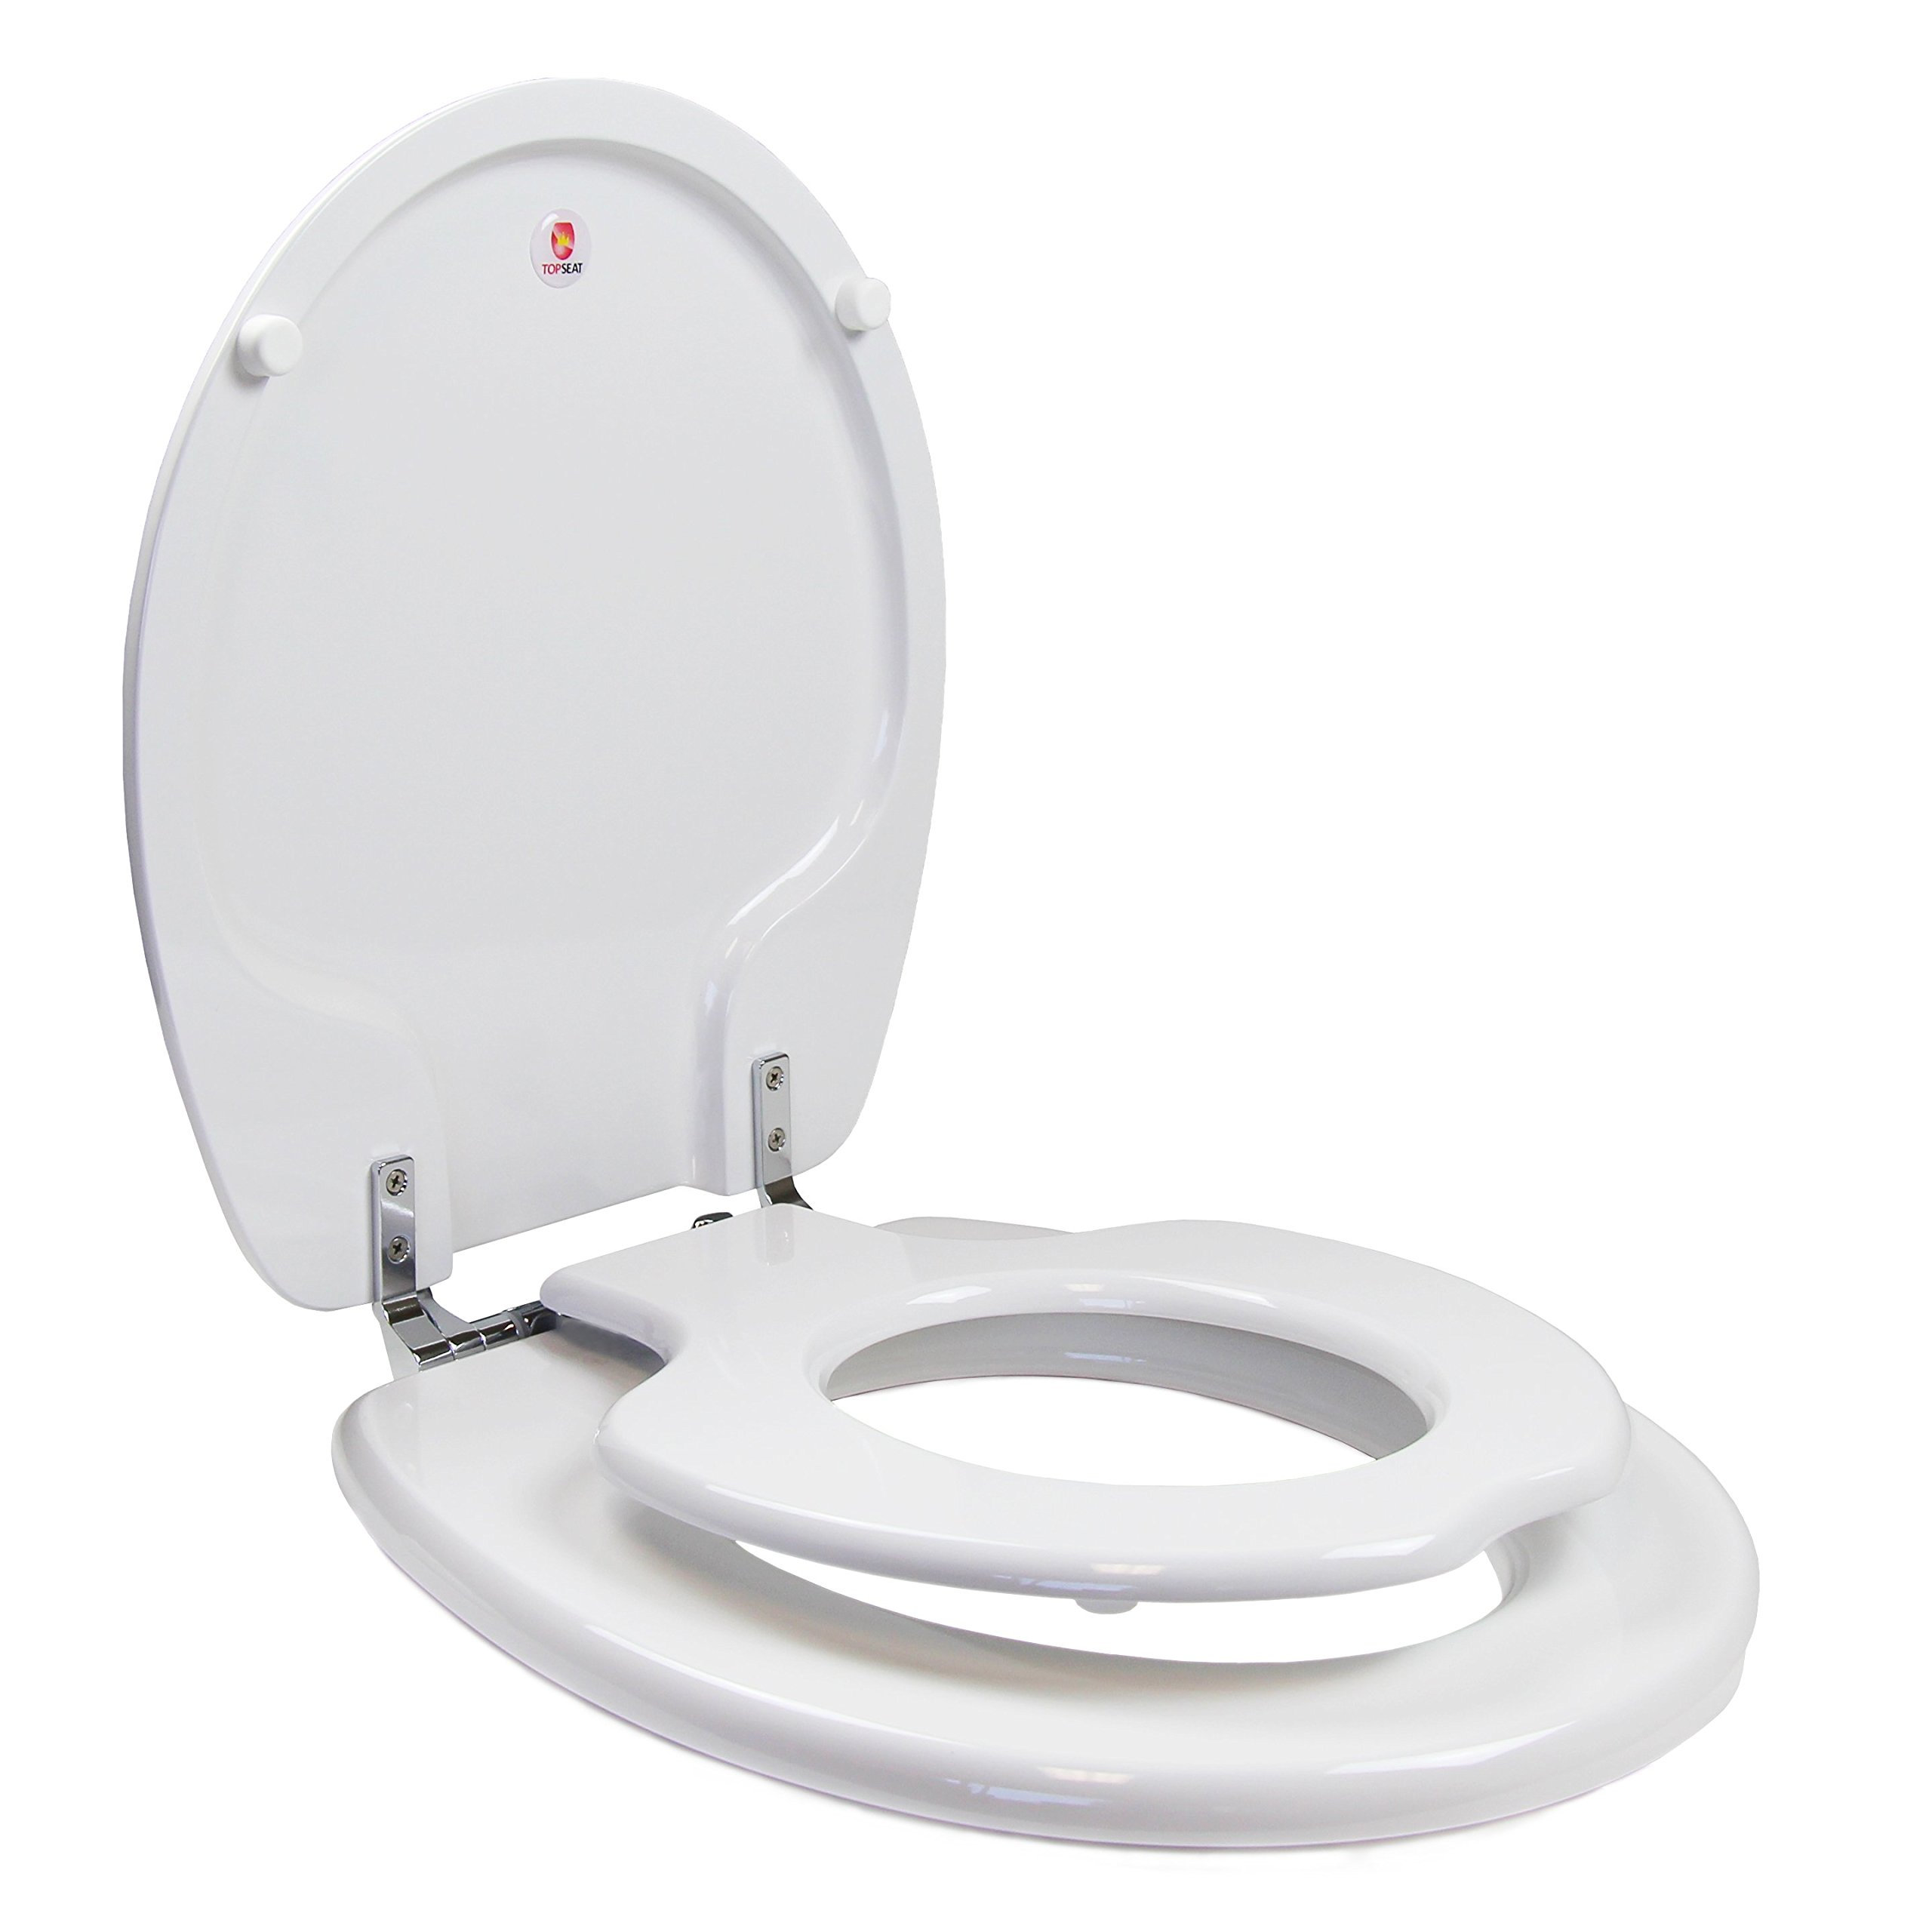 TOPSEAT TinyHiney Potty Toilet Seat, Adult/Child with Chromed Metal Hinges, Wood, Round, White